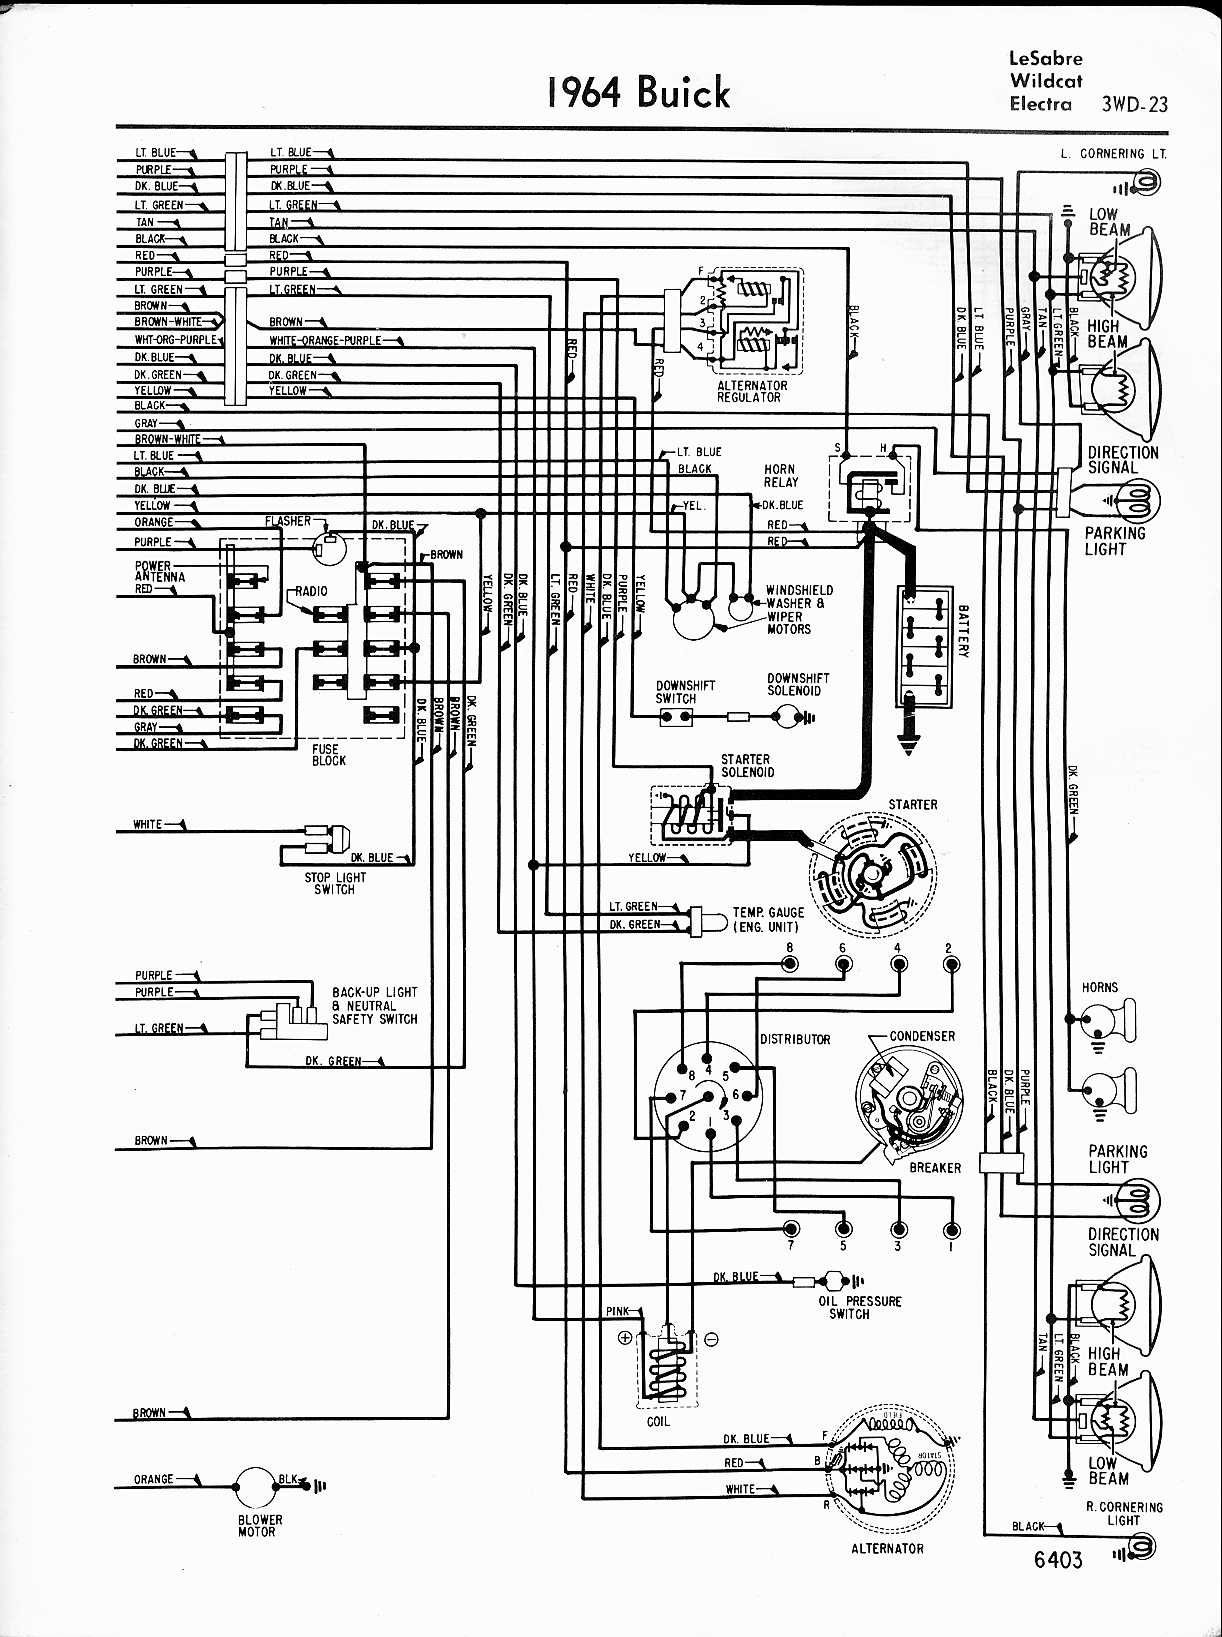 wildcat wiring diagram 11 8 asyaunited de Bass Guitar Wiring Diagram 1990 dodge d350 wiring diagram 15 12 tierarztpraxis ruffy de u2022 rh 15 12 tierarztpraxis ruffy de forest river wildcat wiring diagram wildcat x wiring